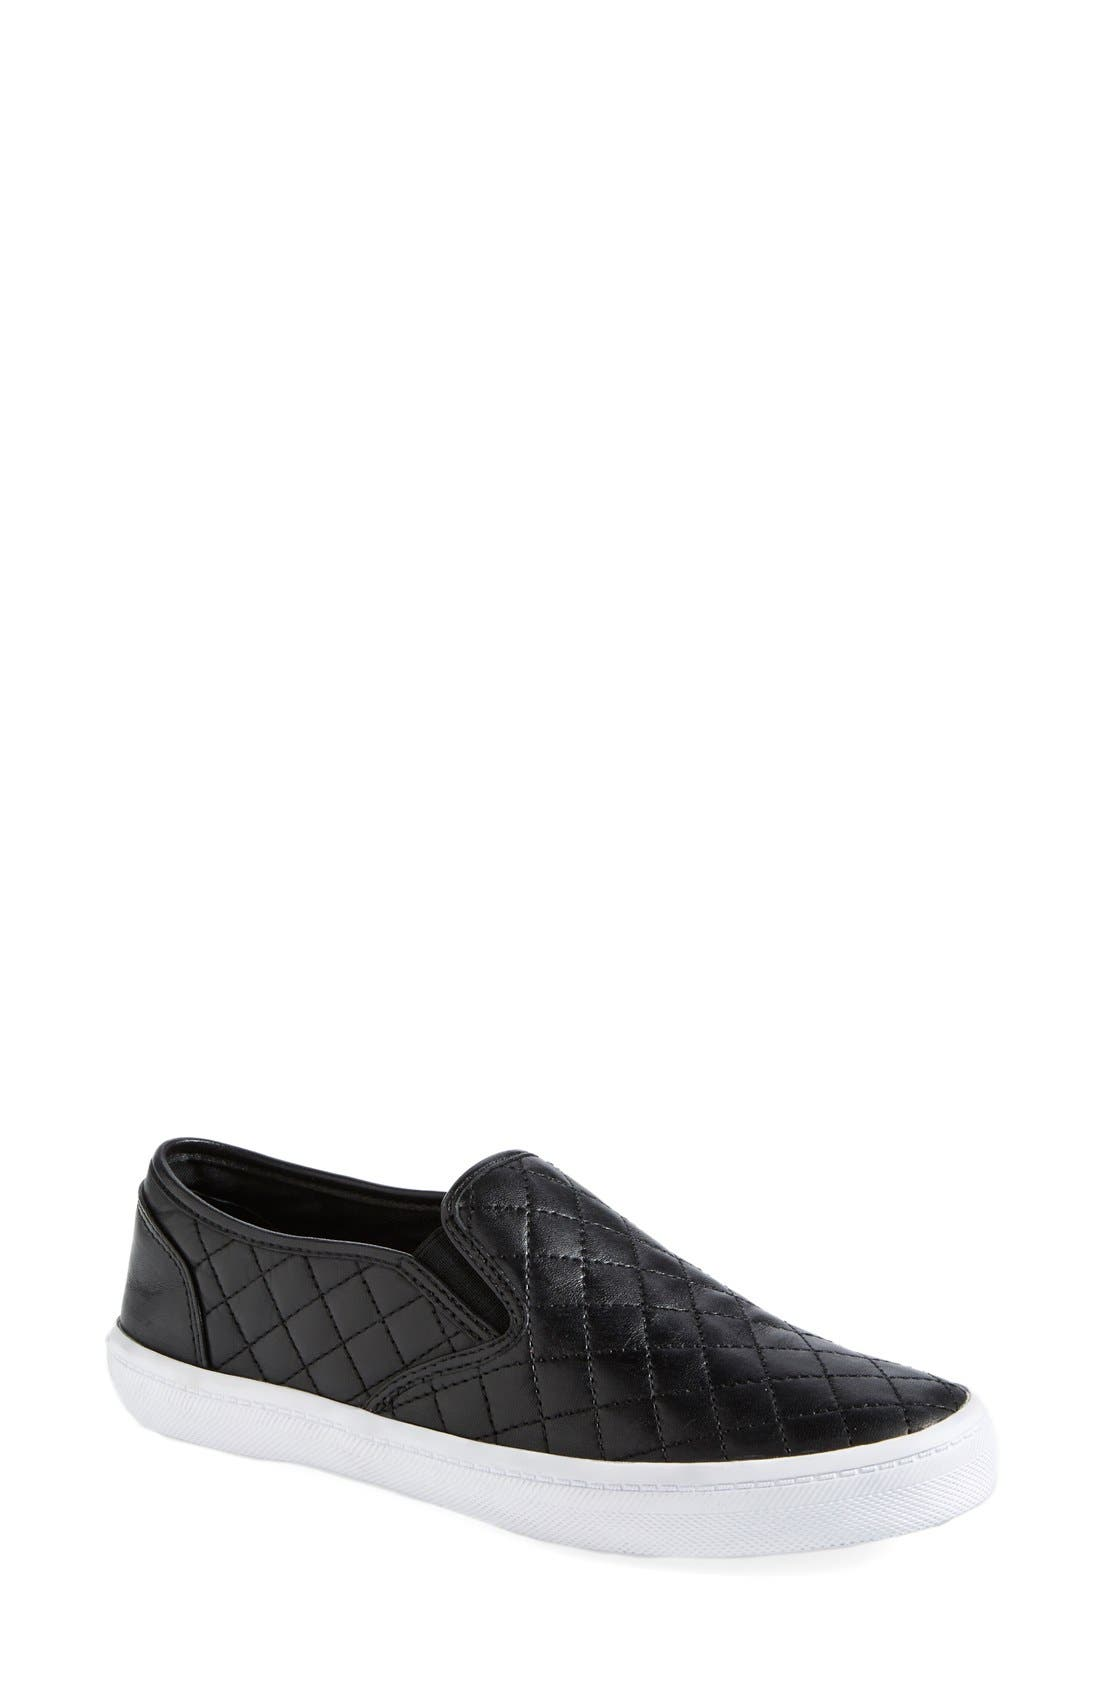 Alternate Image 1 Selected - Rebecca Minkoff 'Sal' Slip-On Leather Sneaker (Women)